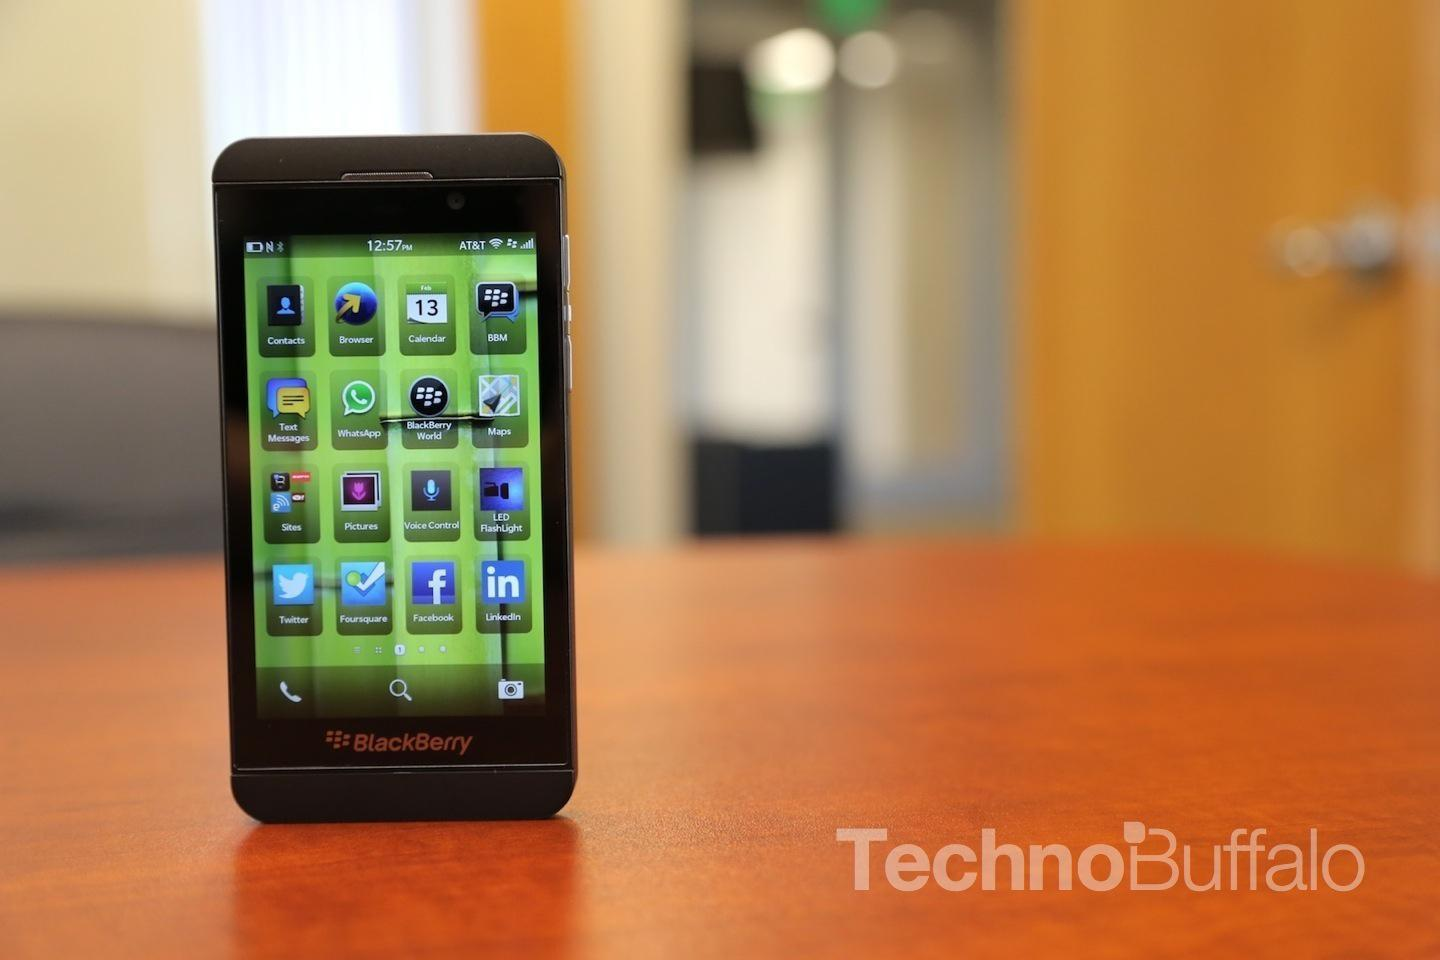 CAN BLACKBERRY Z10 RUN ANDROID APPS - BlackBerry Z10